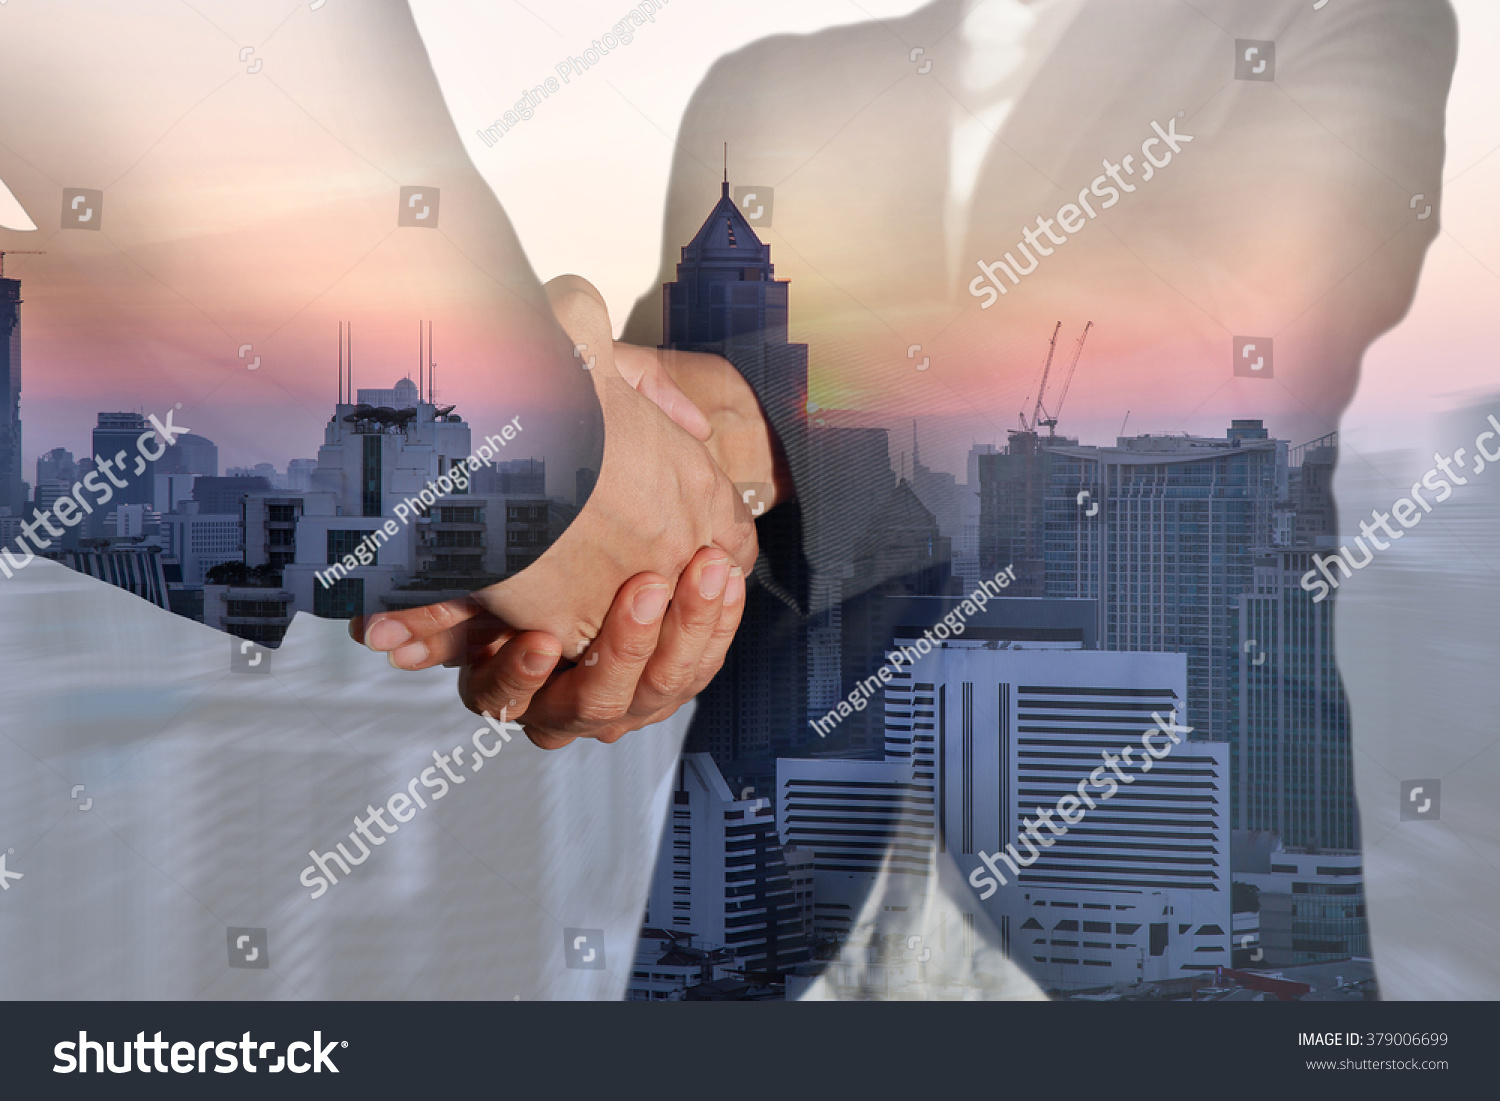 Double exposure of business women double handshake and sunset cityscape on camera zoom background as congratulation concept. #379006699